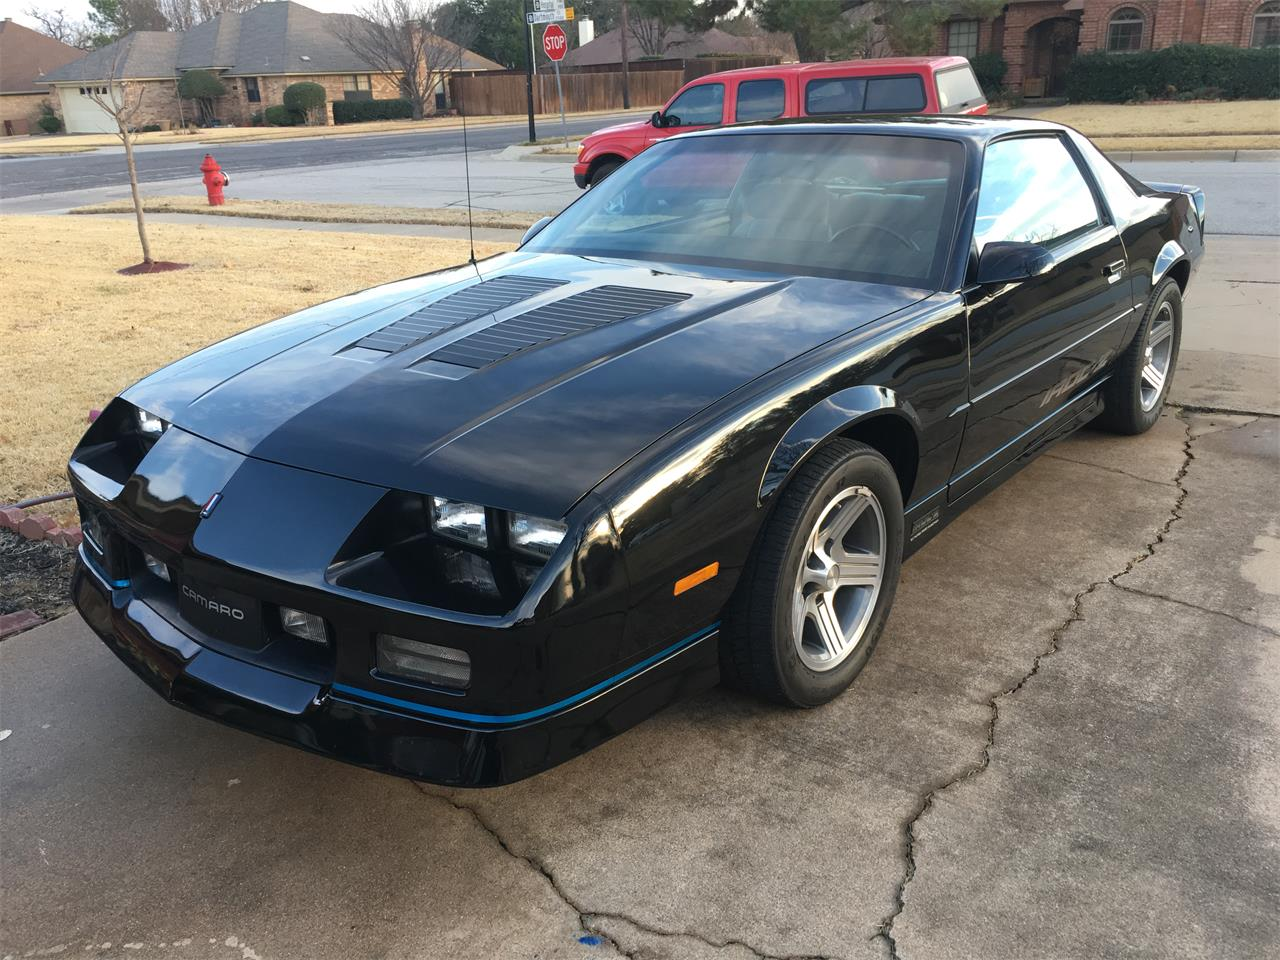 Large Picture of 1989 Chevrolet Camaro IROC Z28 located in Texas - $25,000.00 - MZ5V